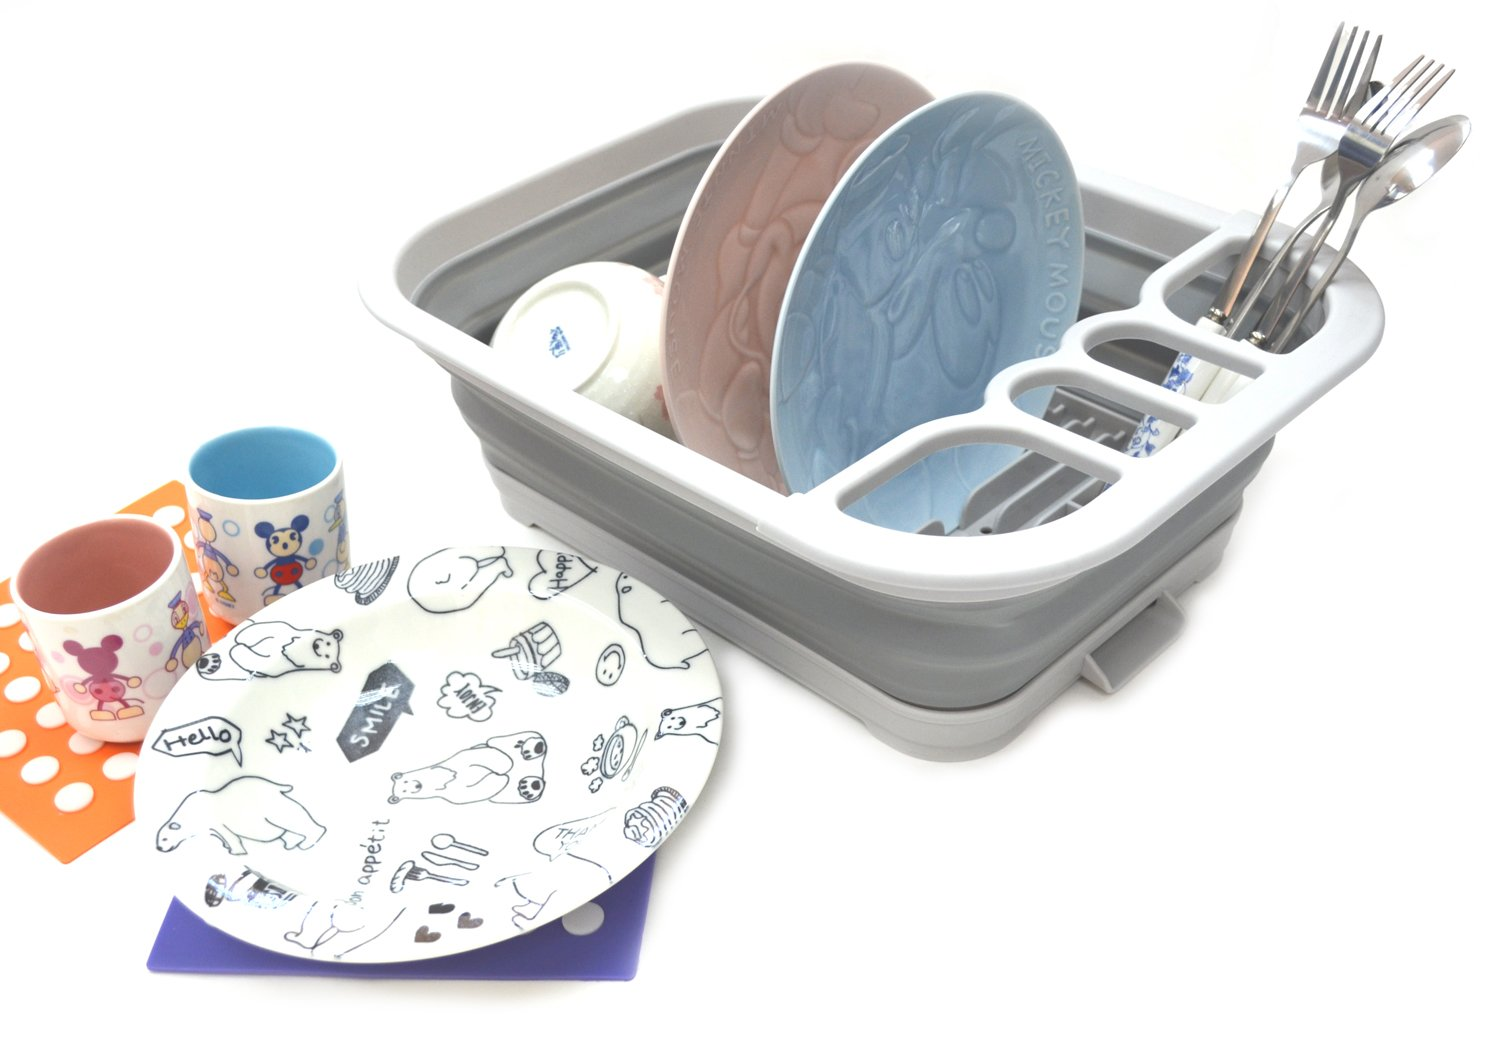 SAMMART Collapsible Dish Drainer with Drainer Board - Foldable Drying Rack Set - Portable Dinnerware Organizer - Space Saving Kitchen Storage Tray (S, Grey) by SAMMART